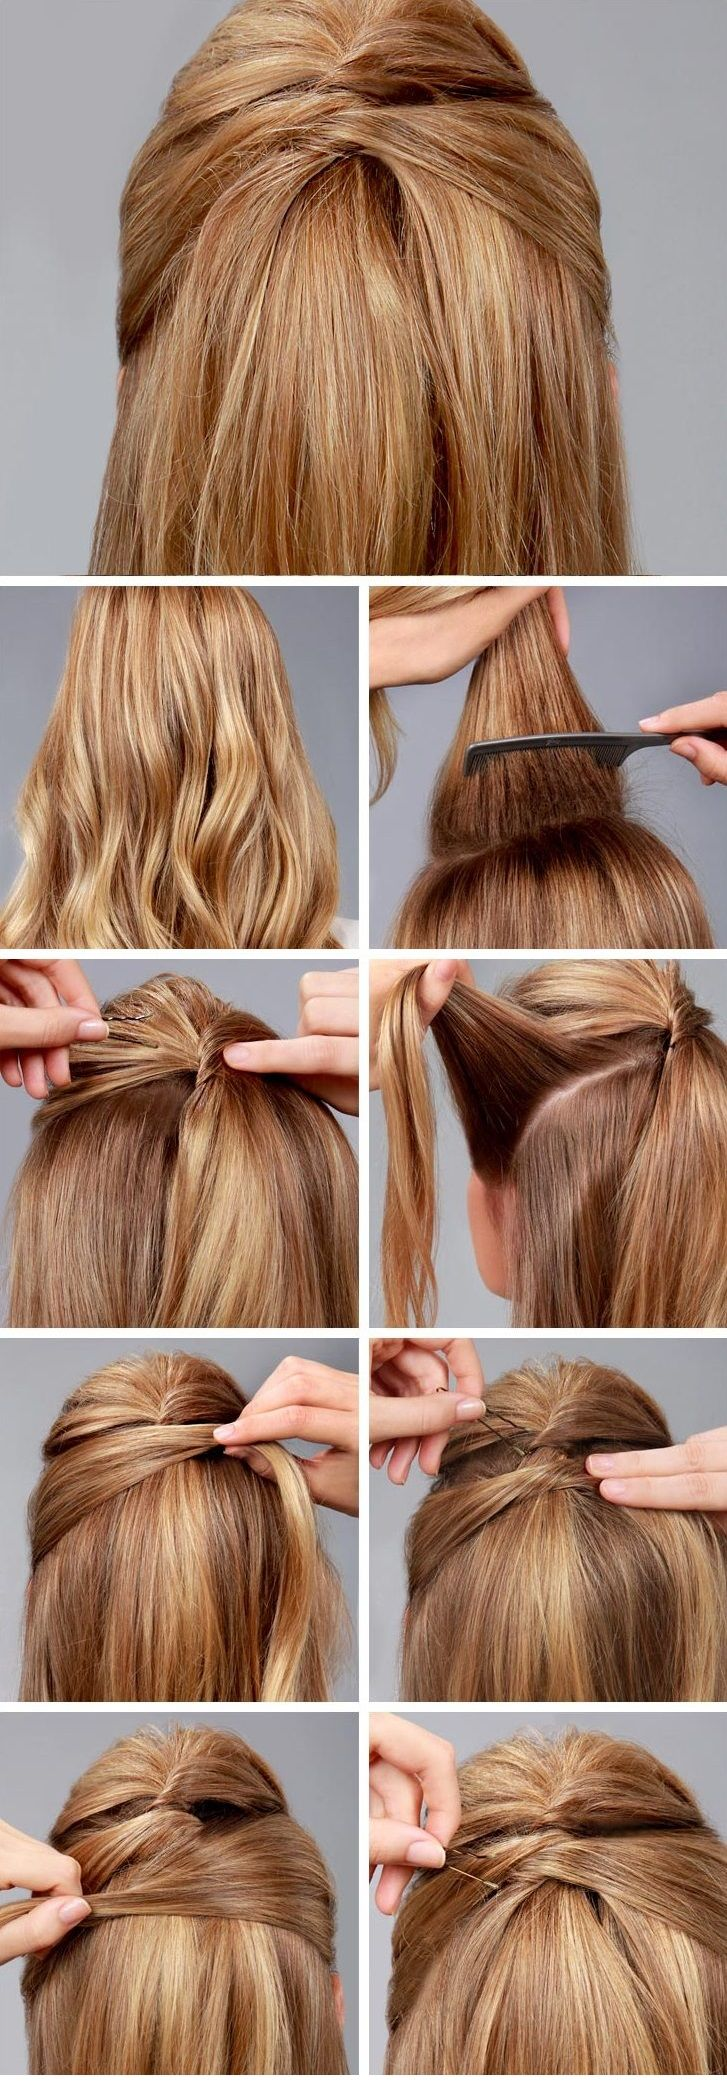 best ponytails for short hair images on pinterest hairstyle